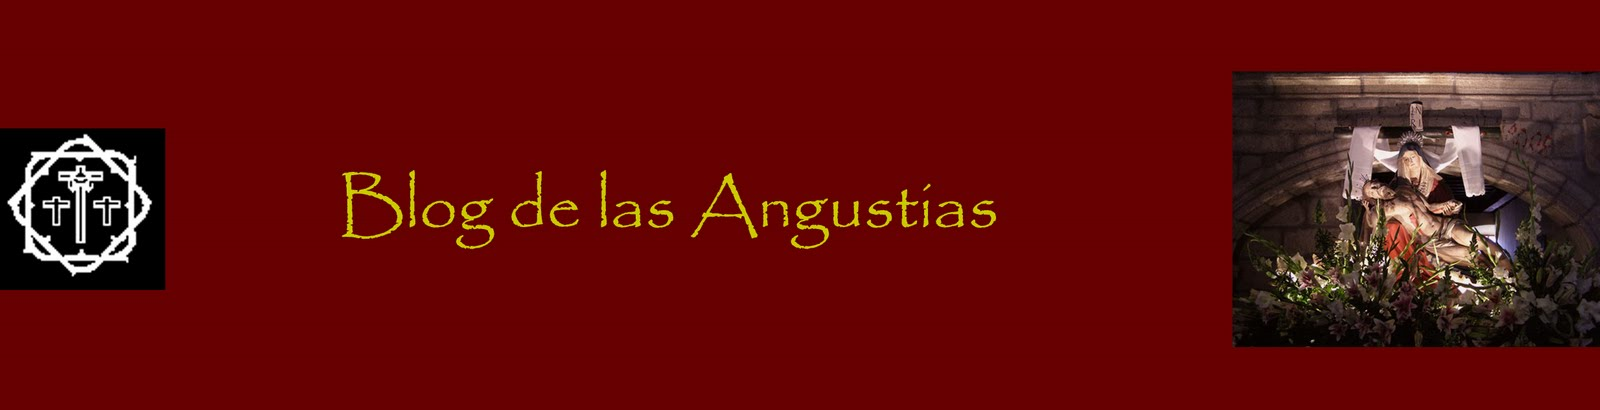 Blog de las Angustias